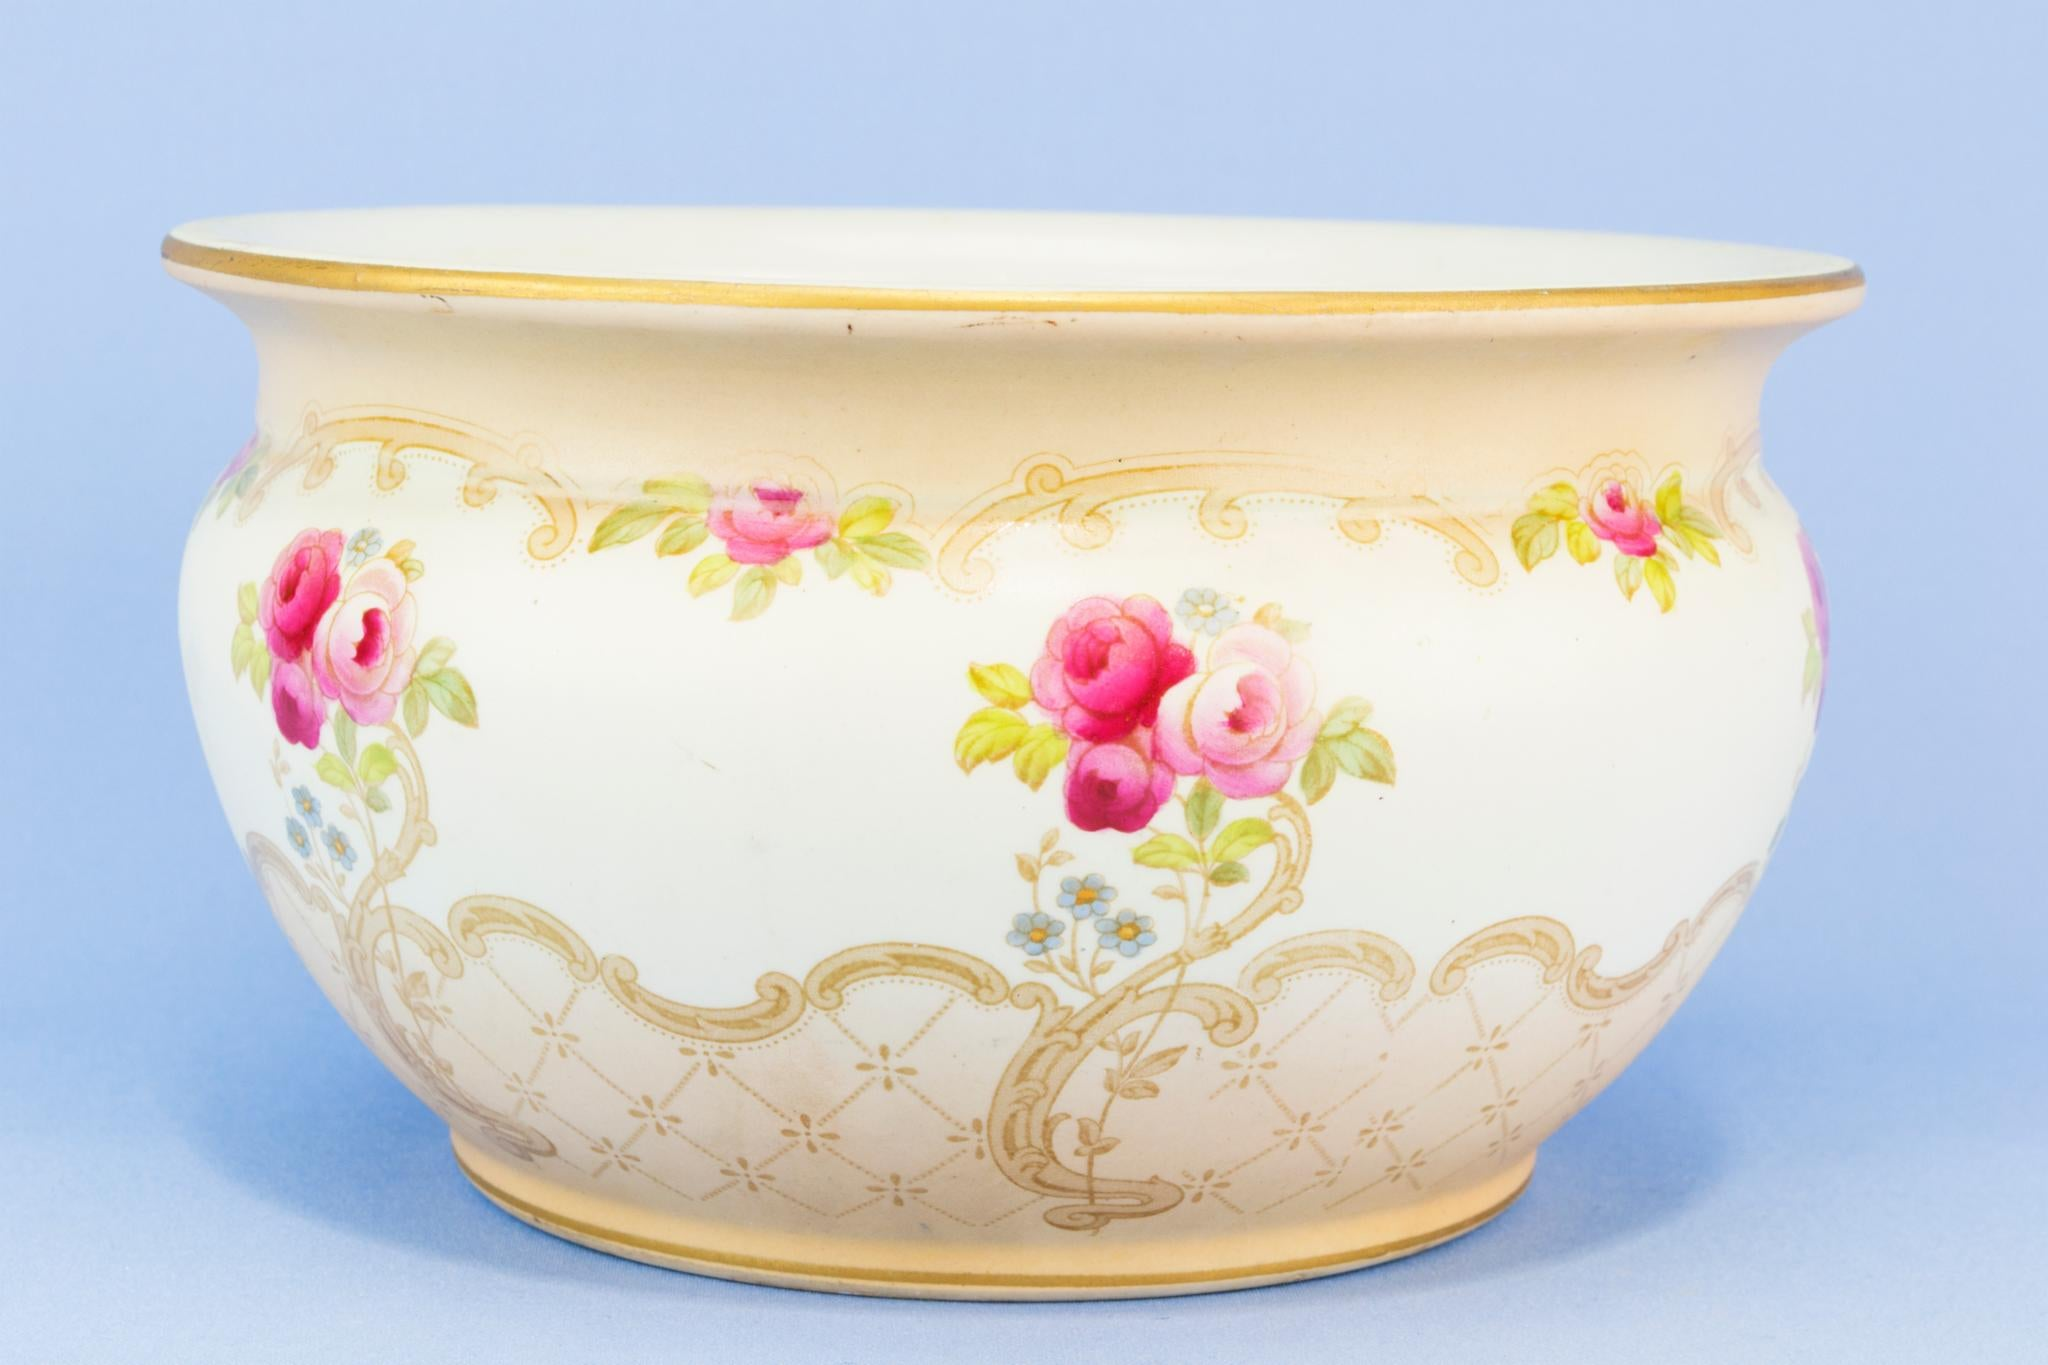 Pink Floral planter, English Early 1900s